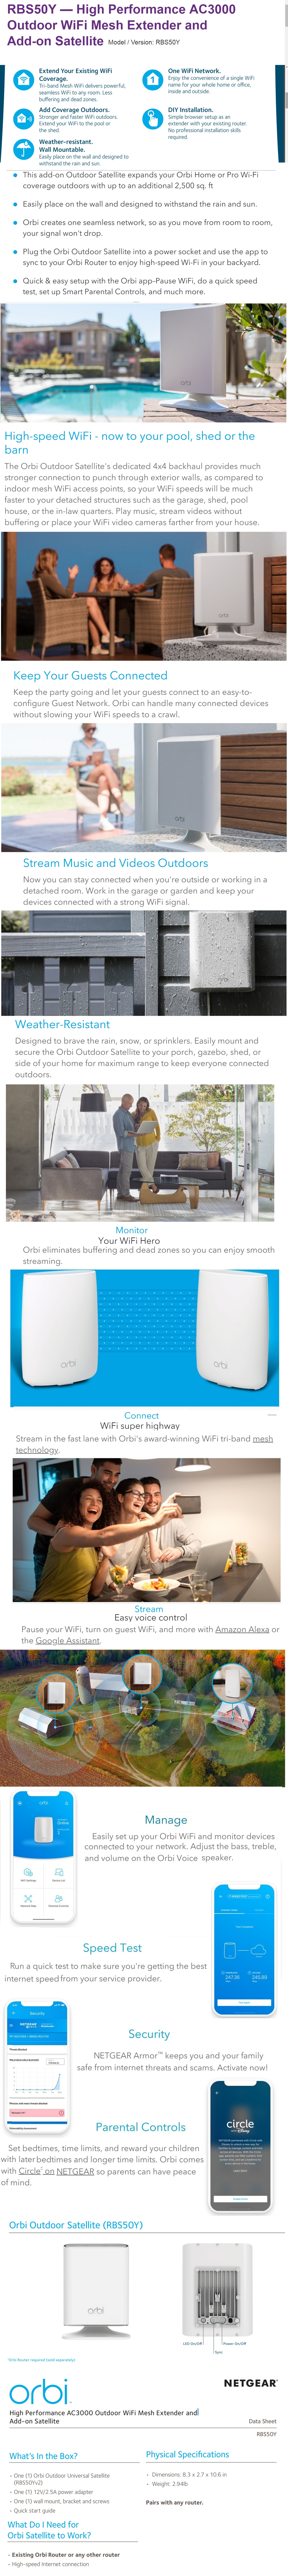 NETGEAR 4PT High Performance AC3000 Outdoor Orbi Outdoor WiFi Mesh Extender  and Add-on Satellite (RBS50Y-100NAS)